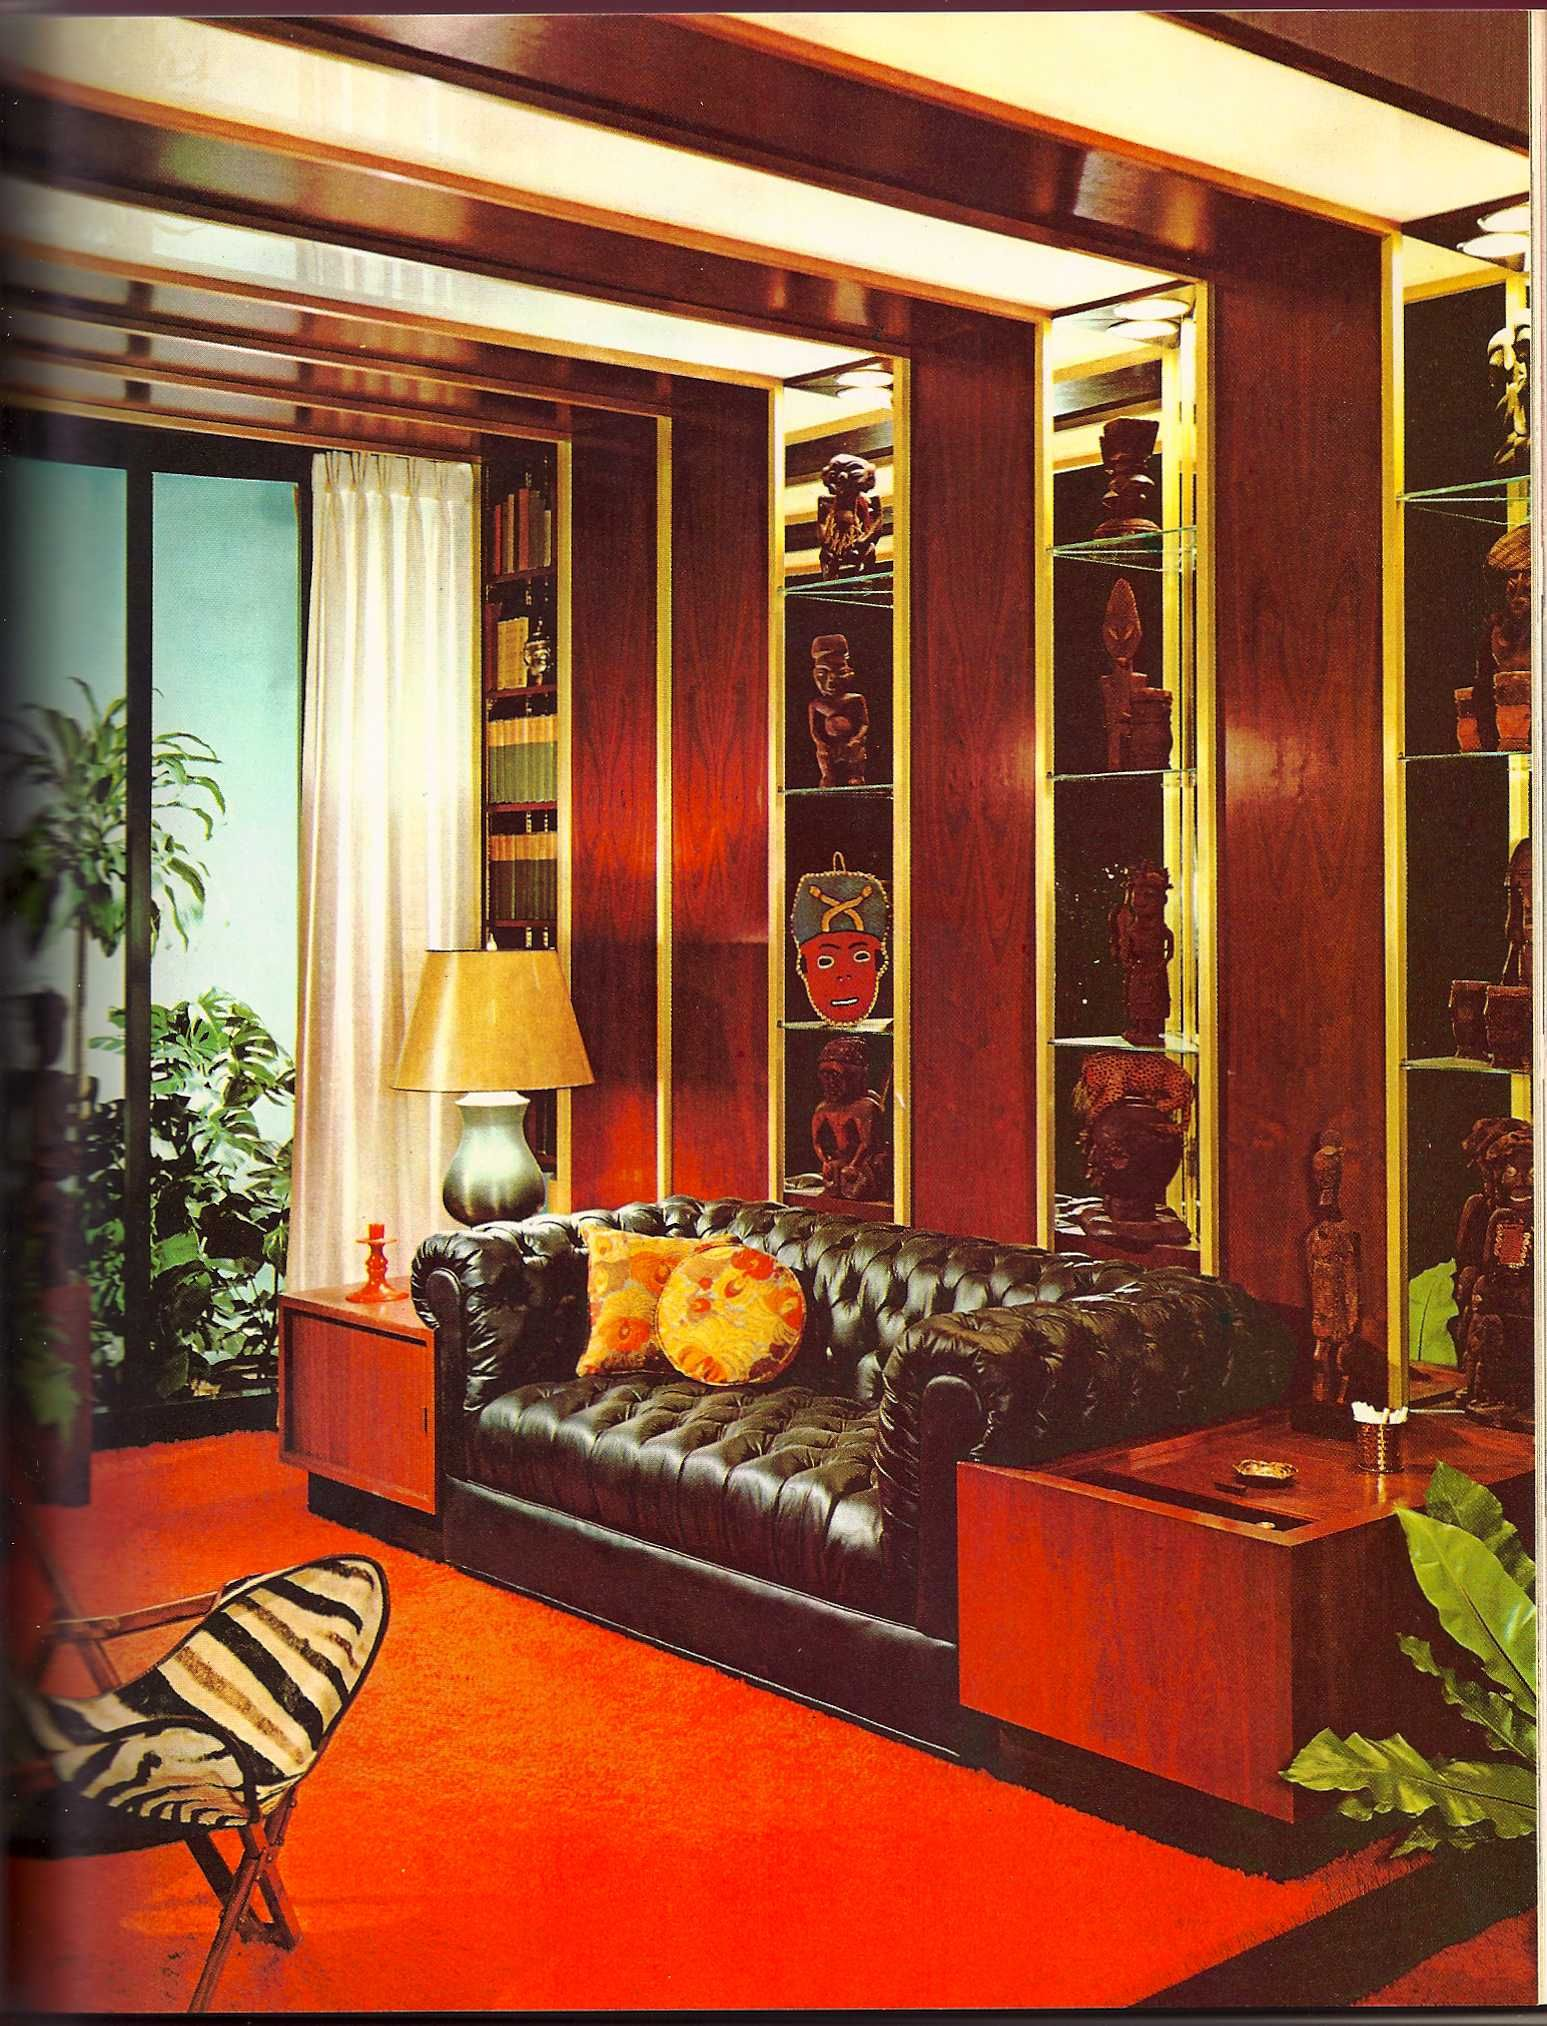 70s Home Design the pool at zsa zsa gabors house was transformed into a re creation of liberaces 70s Interior Design Book 5